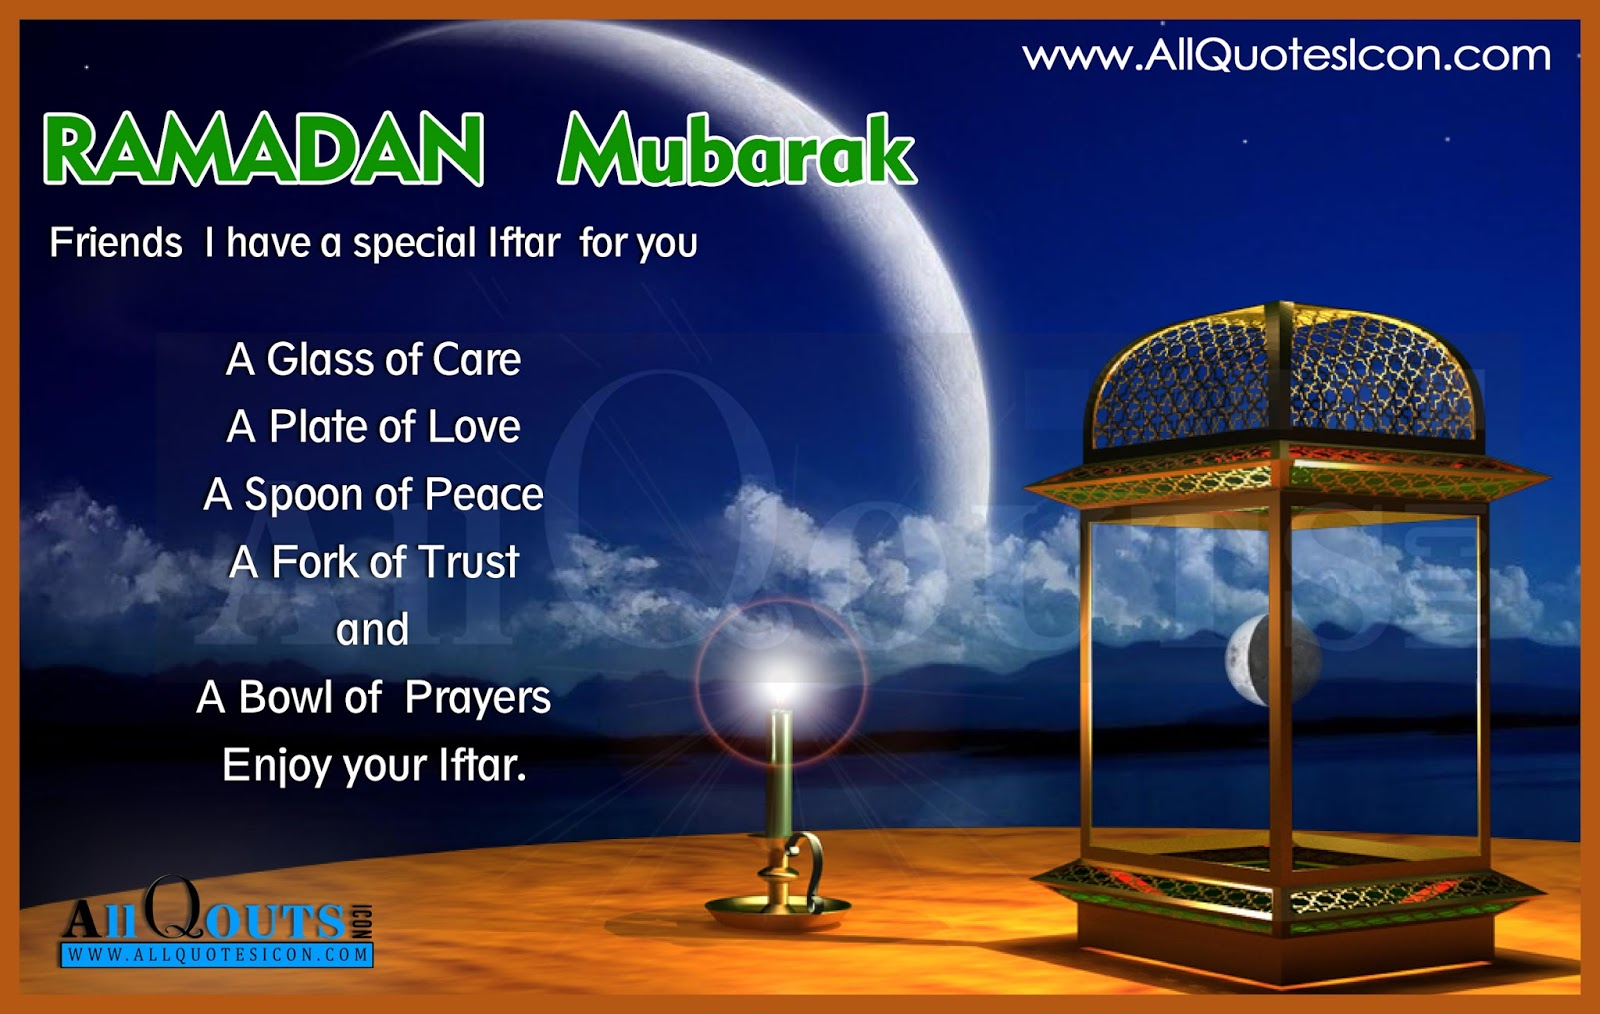 Ramadan Ramazan Mubarak 25 Greetings And Ramadan Mubarak 2018 Cards